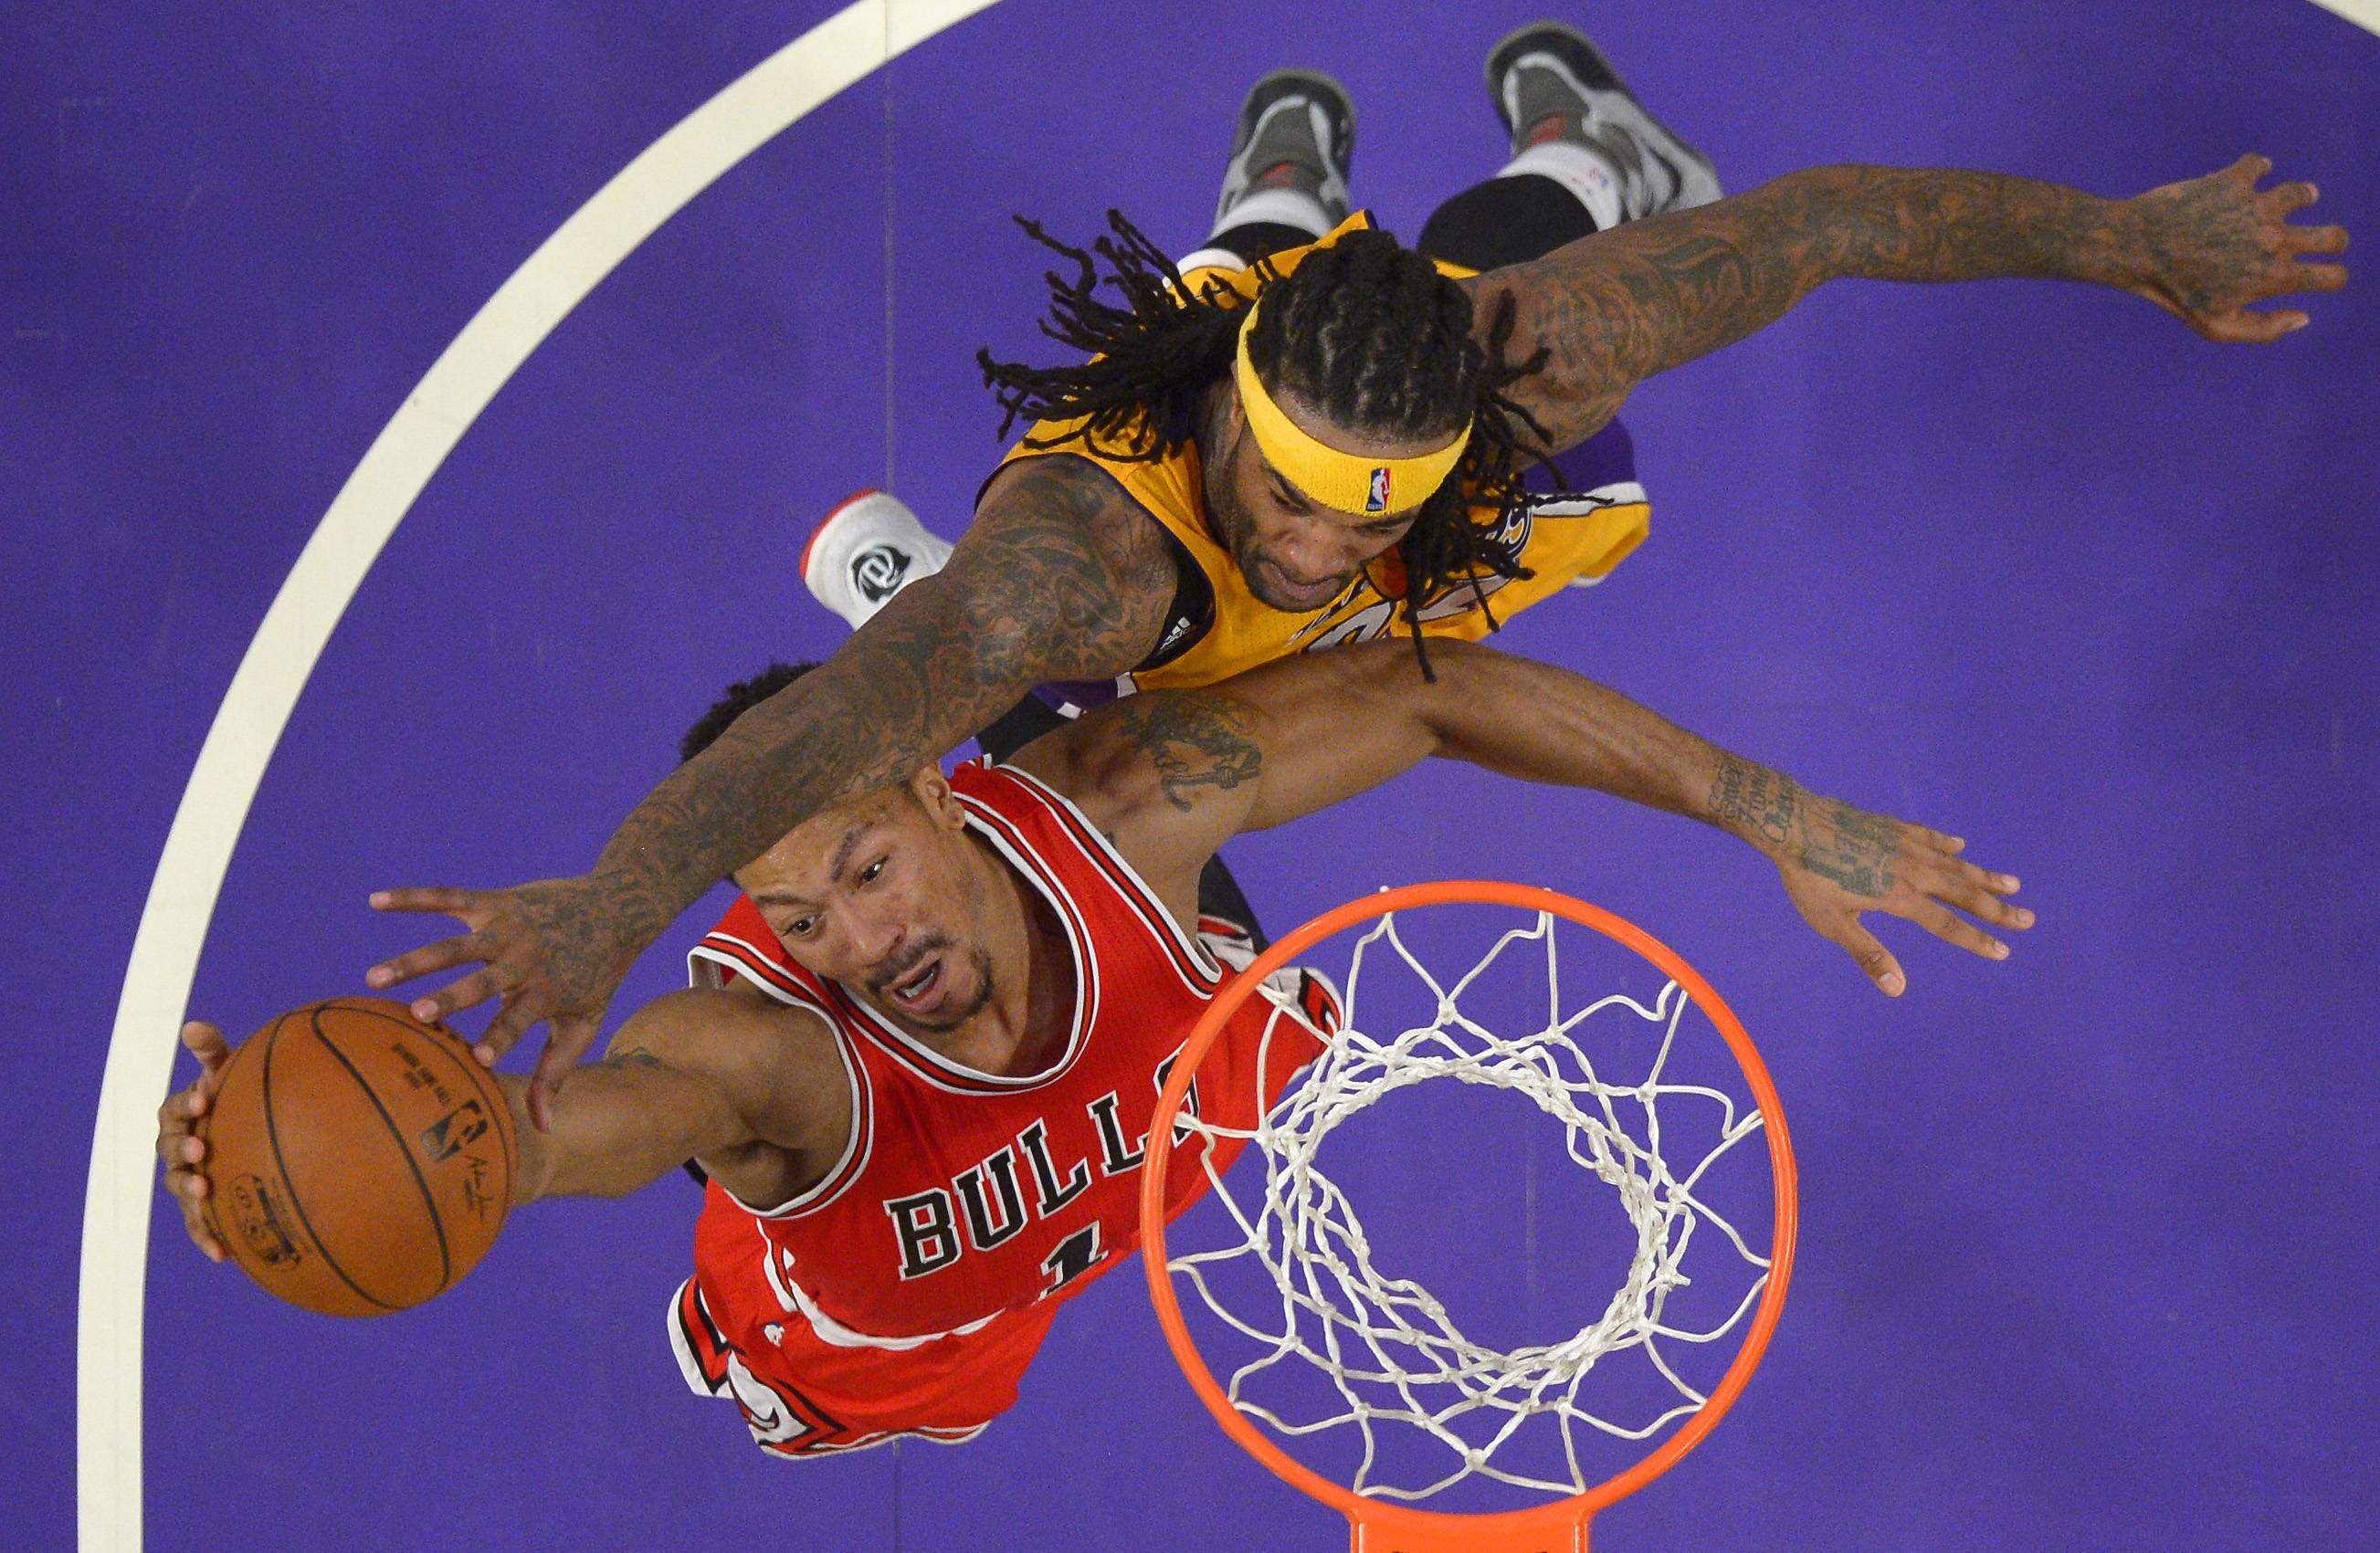 The Bulls' Derrick Rose, here trying a shot under pressure from the Lakers' Jordan Hill, hit only 7 of 26 shots for 17 points including some ill-advised misses from long range Thursday in a 123-118 double overtime loss in Los Angeles.